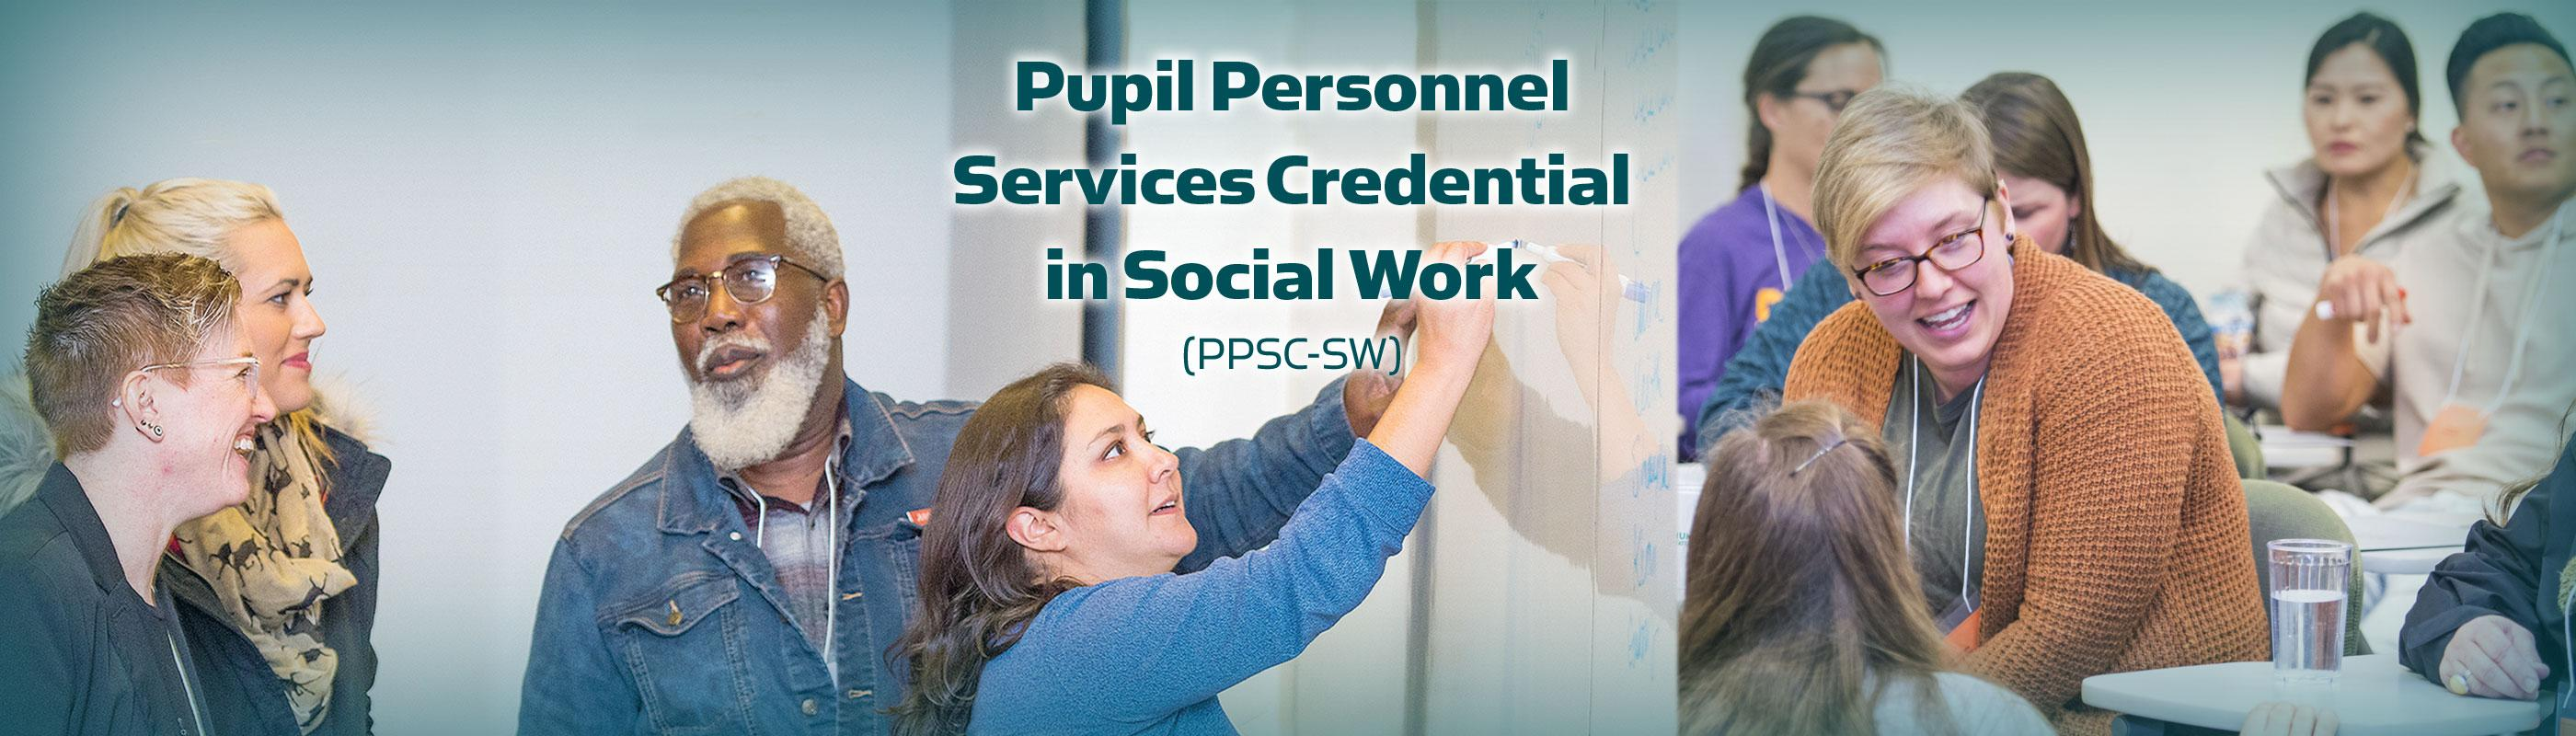 Pupil Personnel Services Credential in Social Work